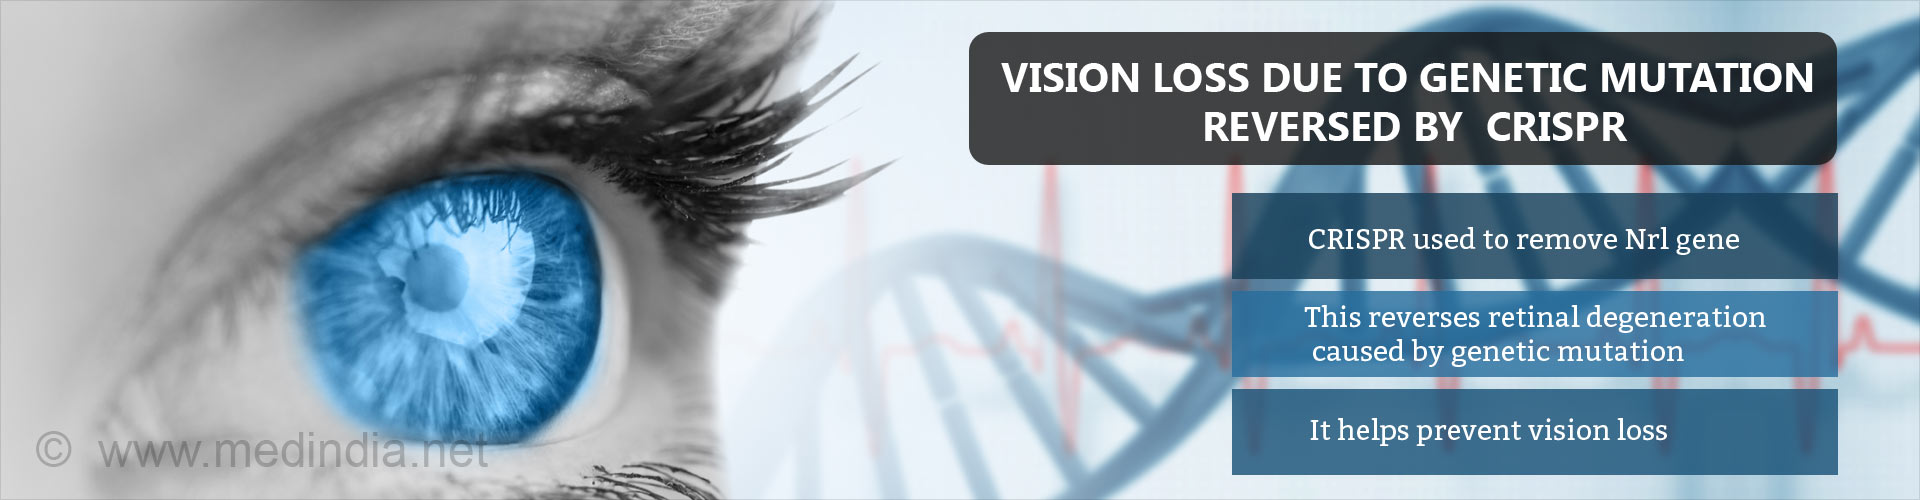 CRISPR Used to Modify Vision Loss Caused by Genetic Mutation